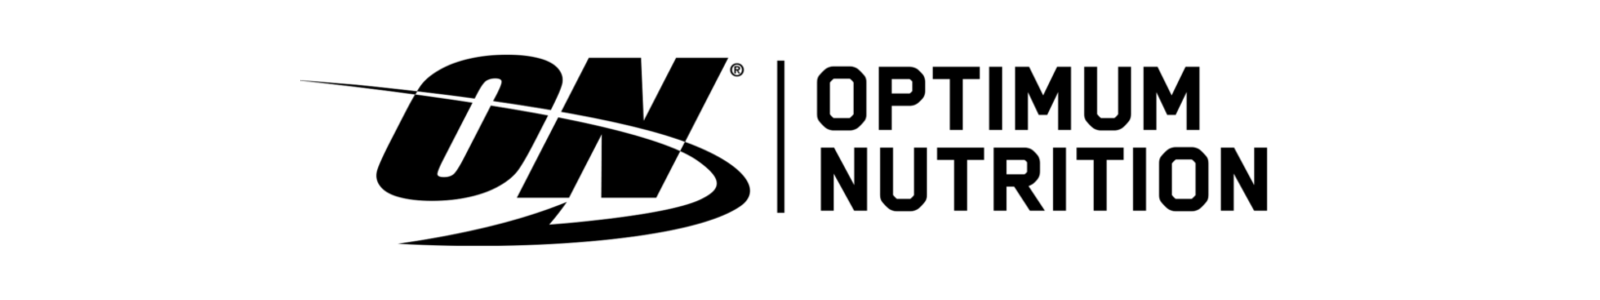 Brands - Optimum Nutrition